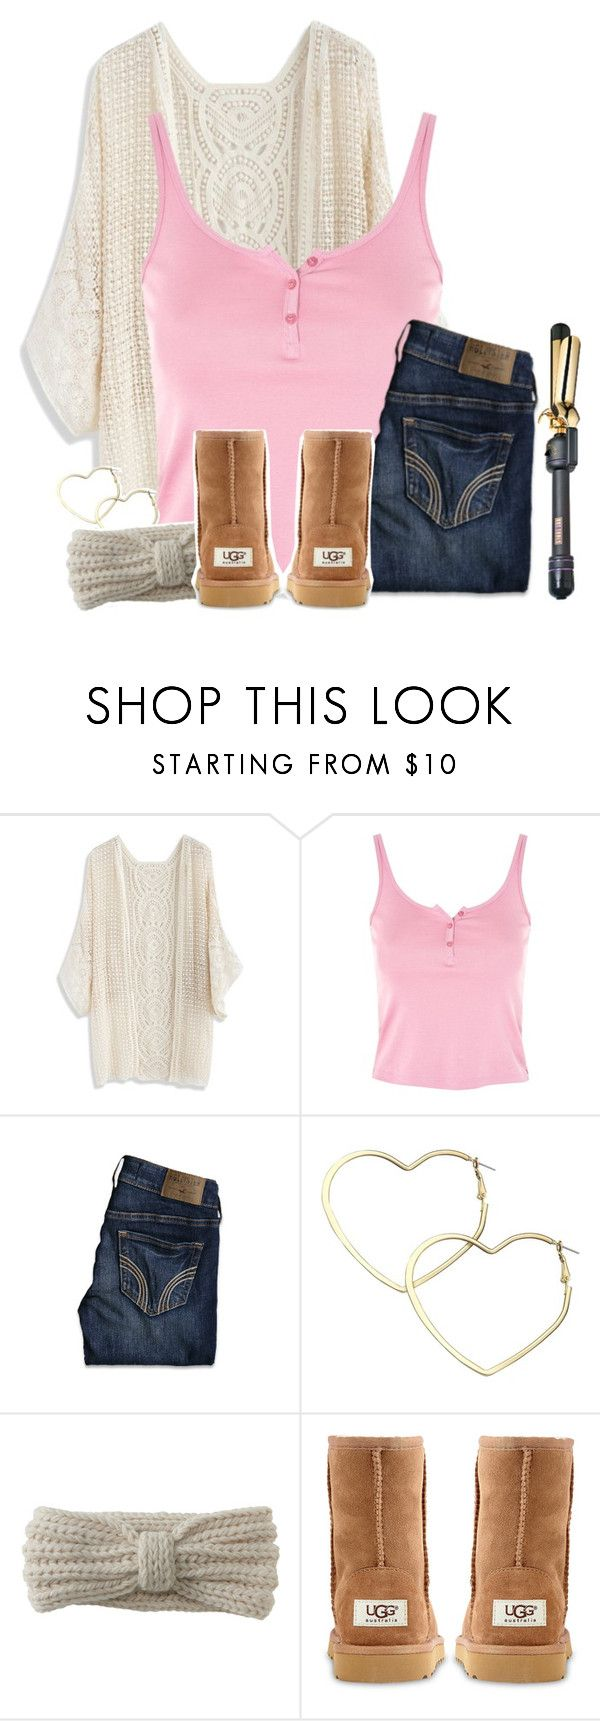 """""""Comfy Cozy in Pink"""" by xomadibbyyy ❤ liked on Polyvore featuring Chicwish, Topshop, Hollister Co., Thalia Sodi, Aéropostale, UGG Australia and Hot Tools"""